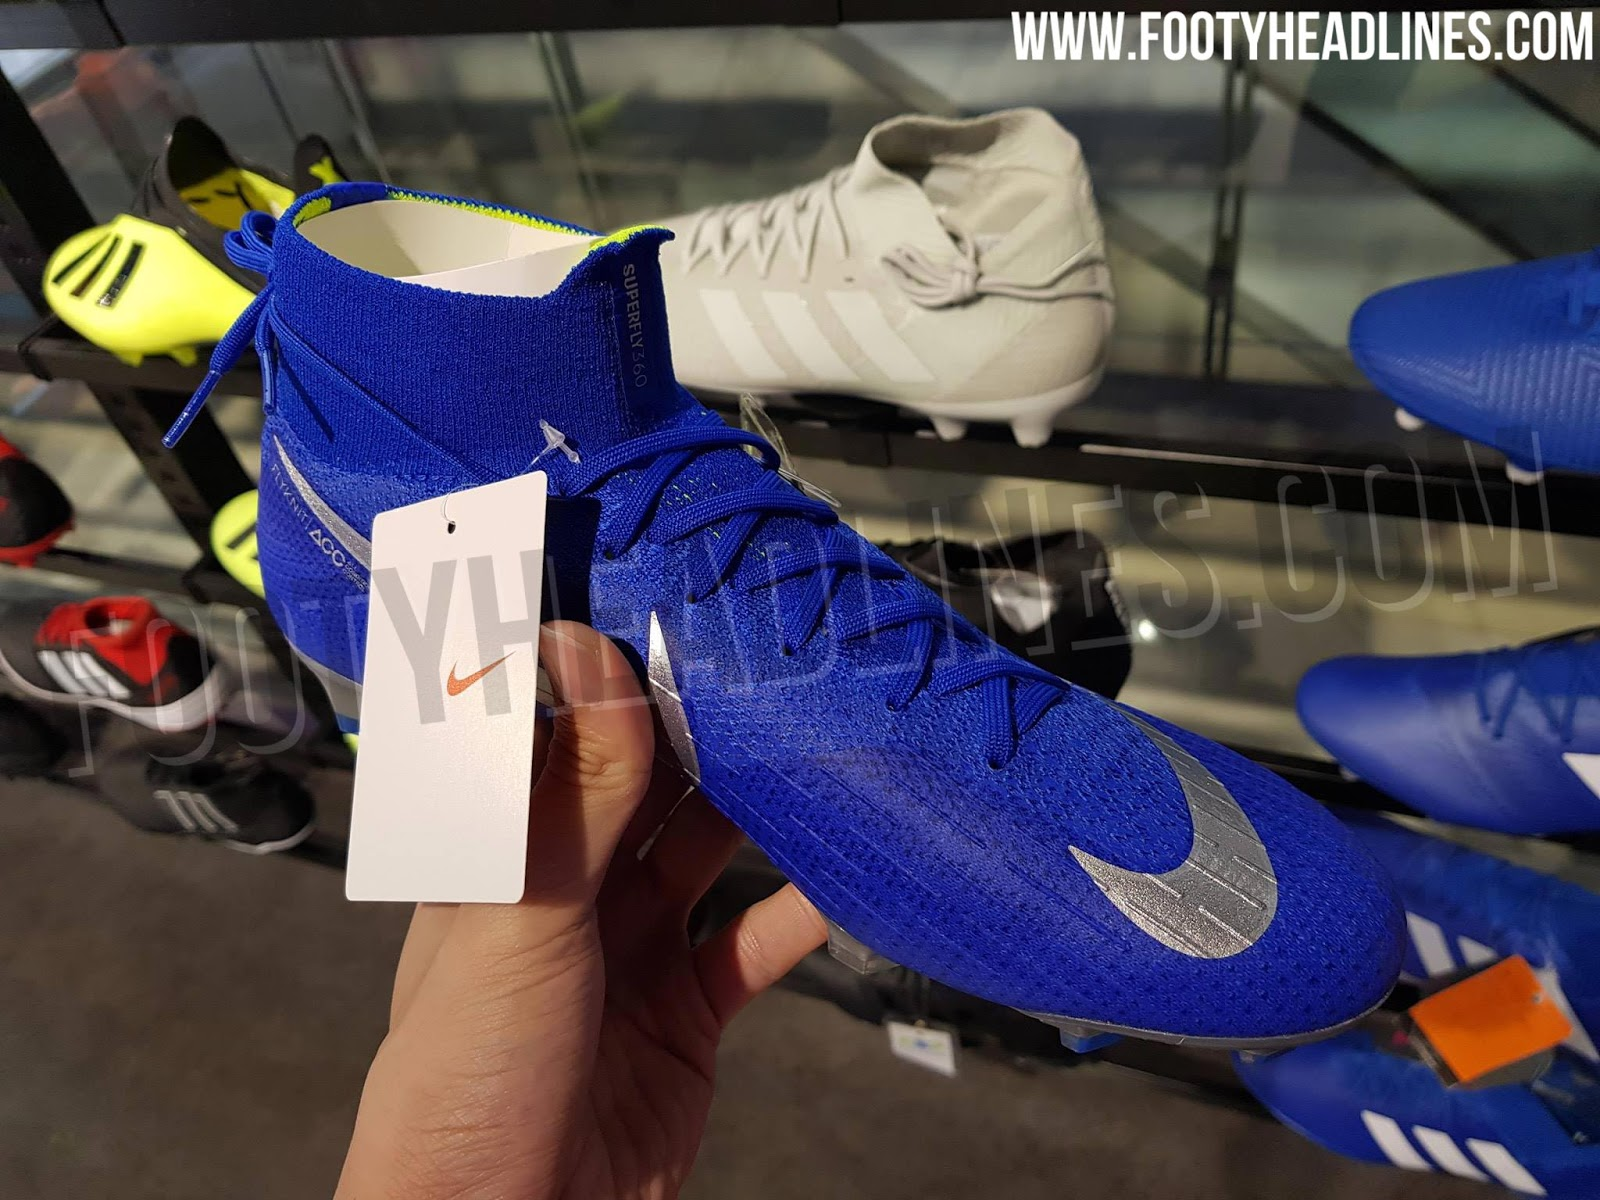 special nike always forward chapter 2 football boots